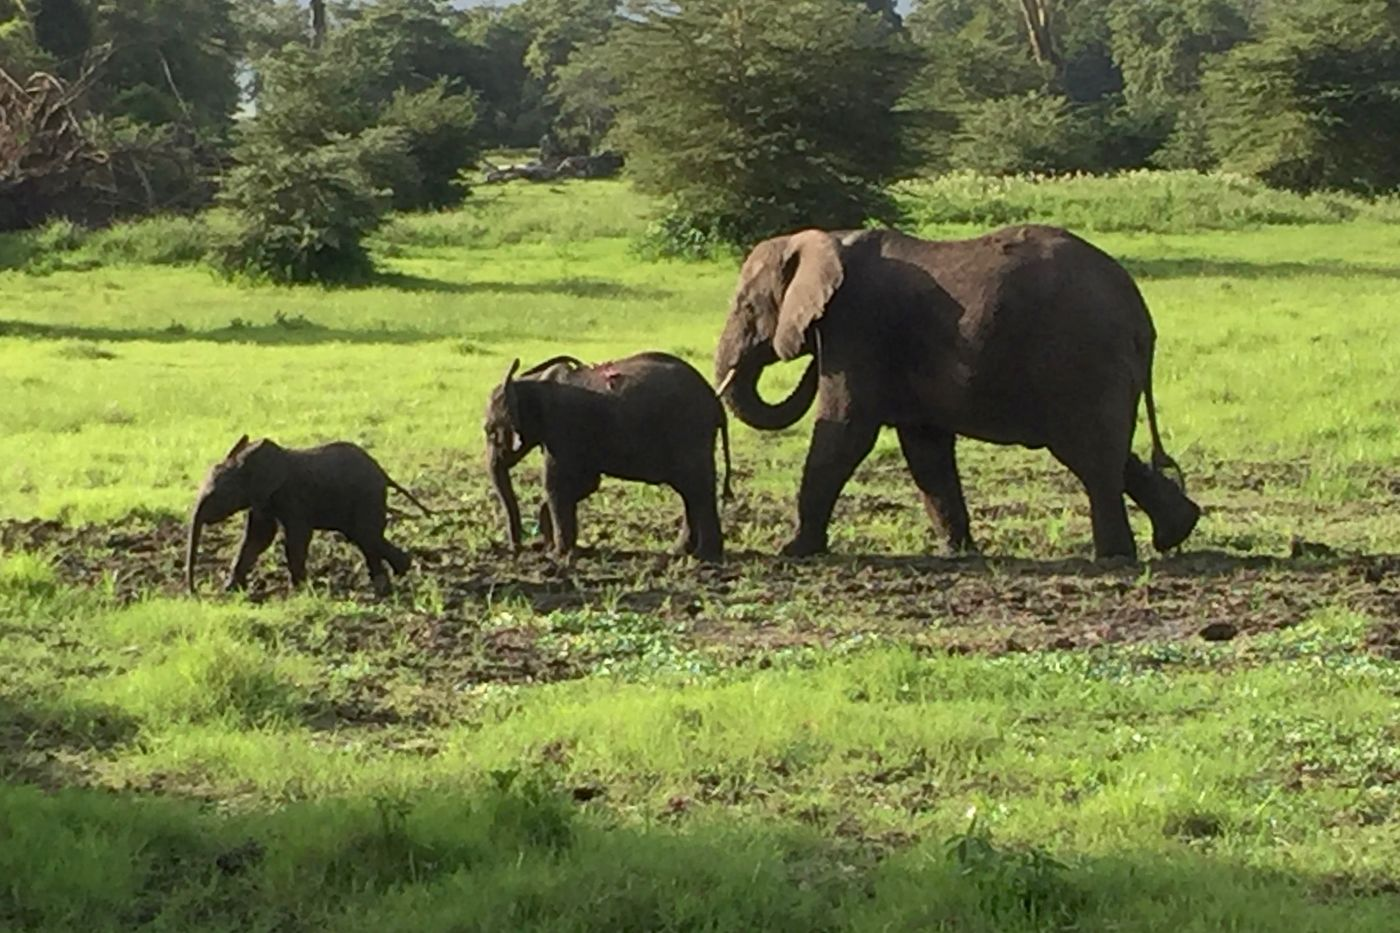 Three elephants walk across a grassy plain. Trees and shrubs are visible in the background.